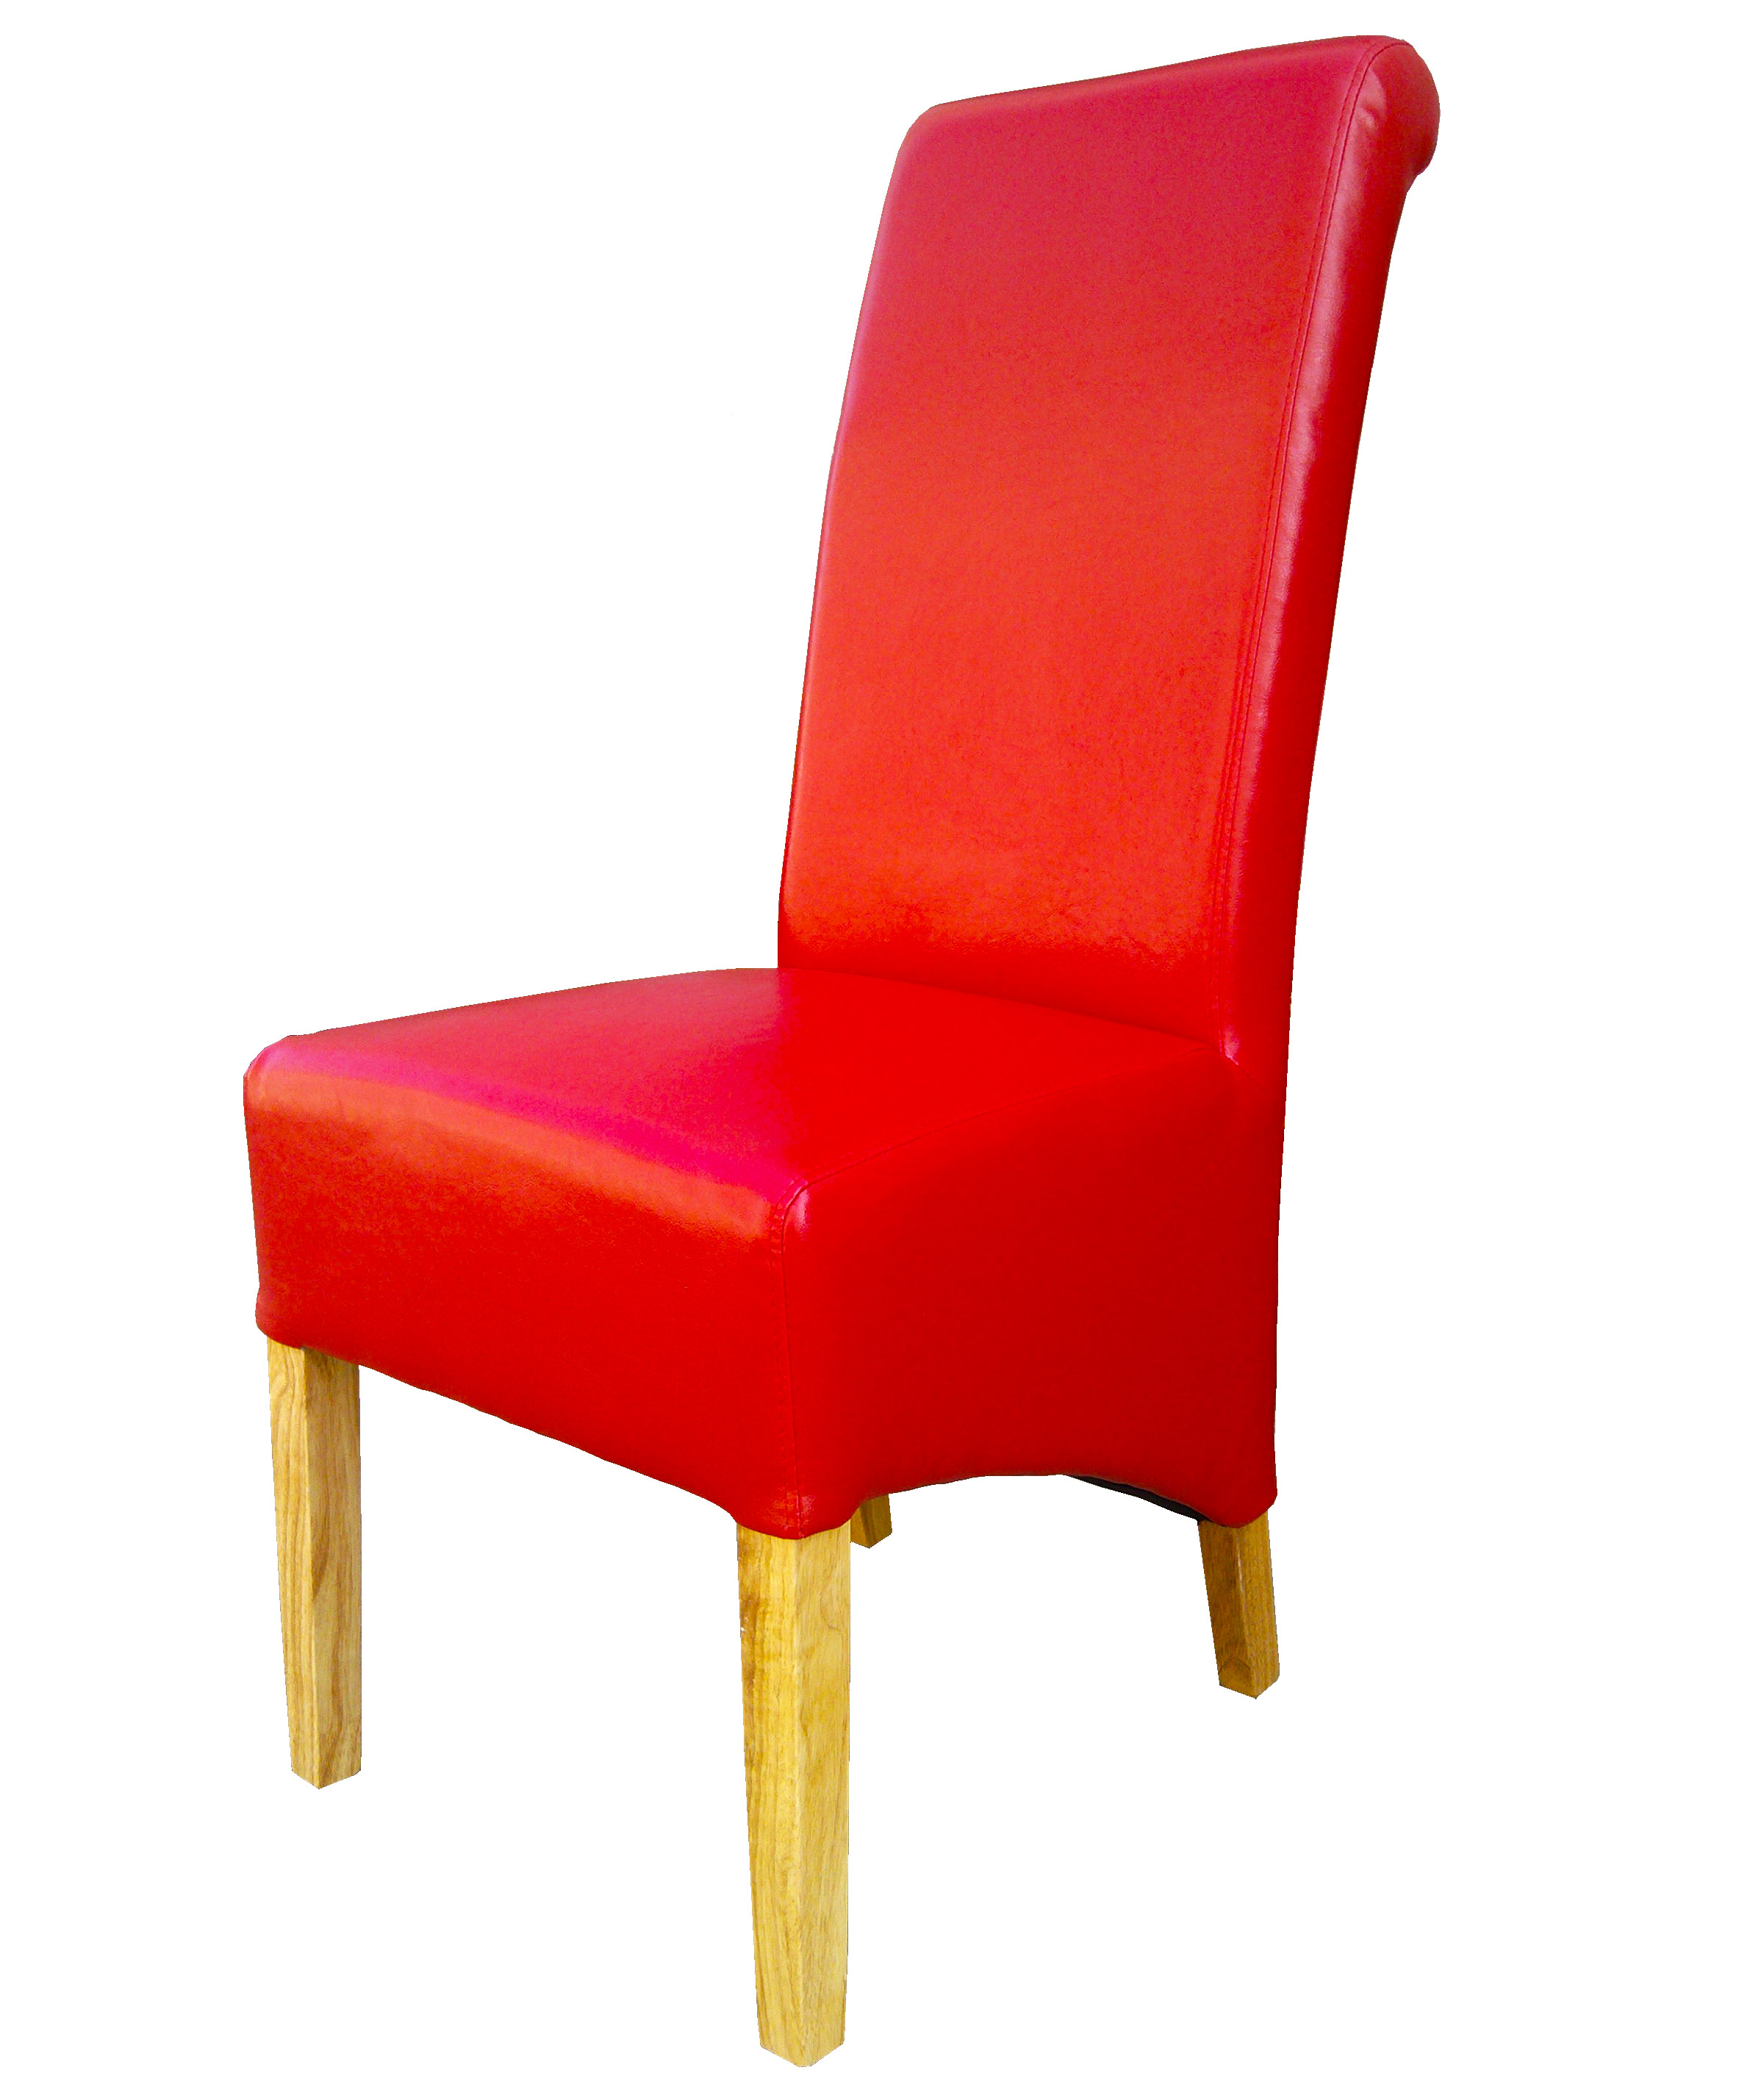 red high back dining chairs red kitchen chairs Premium Quality Dining Chairs Faux Leather Roll Top Scroll High Back Wood Legs